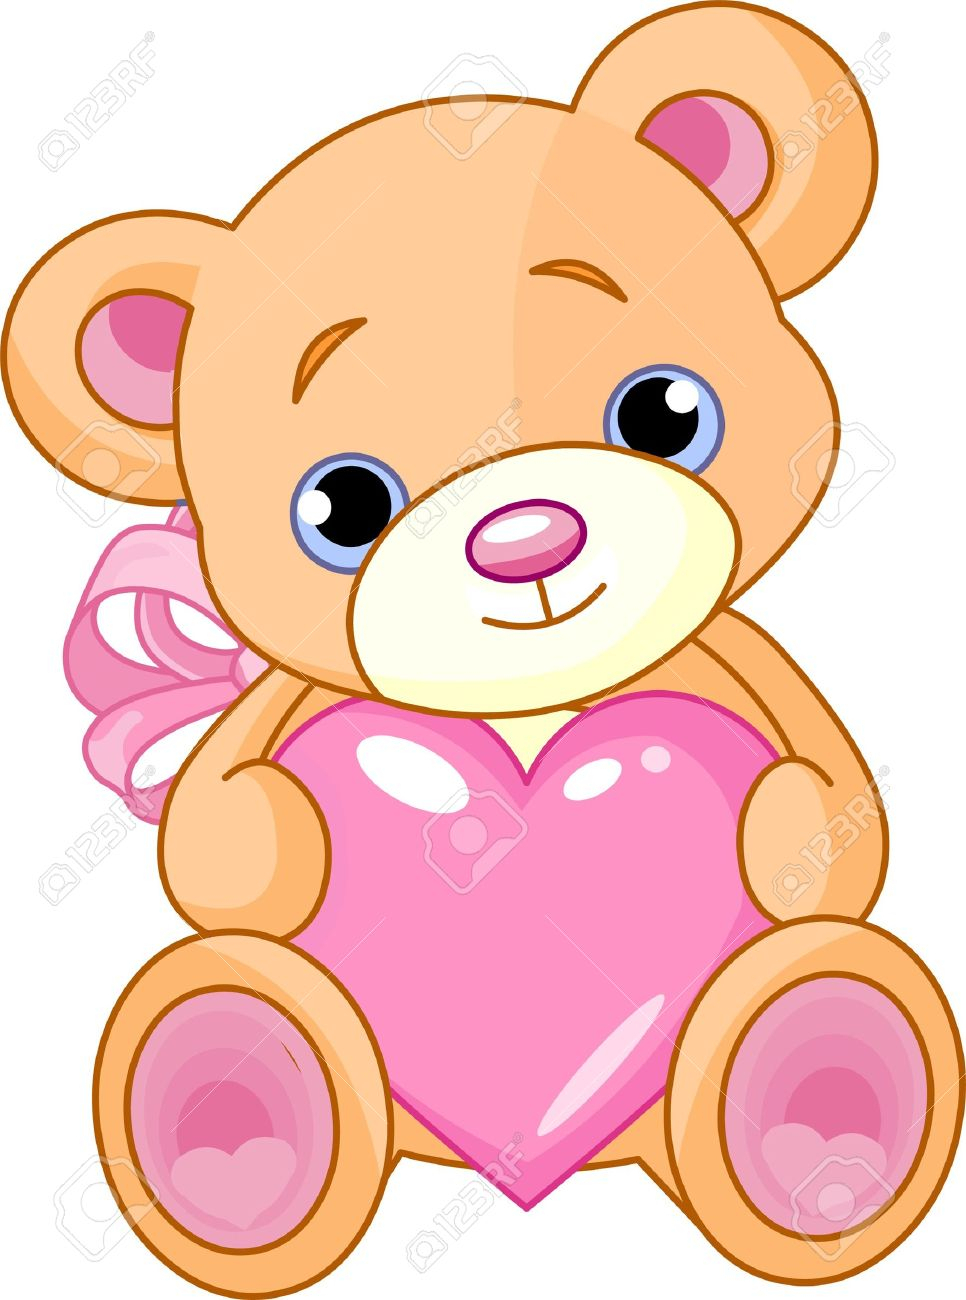 966x1300 Collection Of Teddy Bear Drawing With Heart High Quality